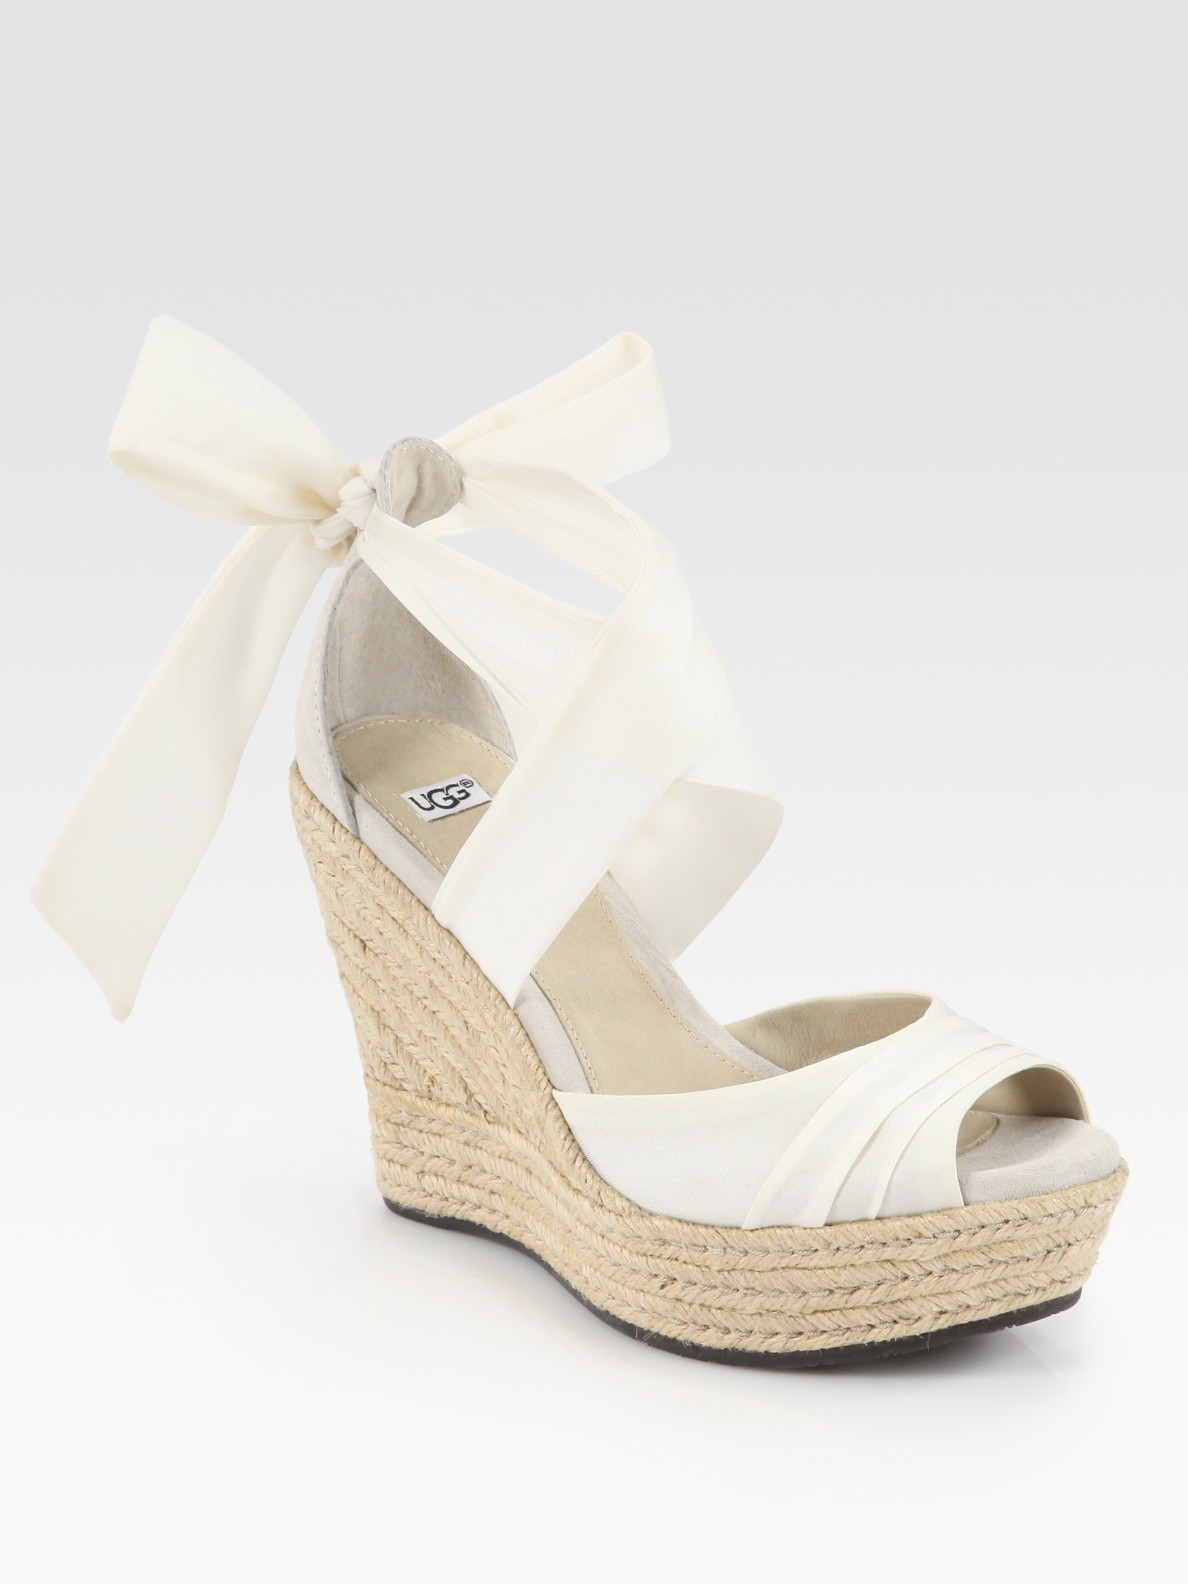 ugg lucianna tieup silk and suede espadrille wedge sandals